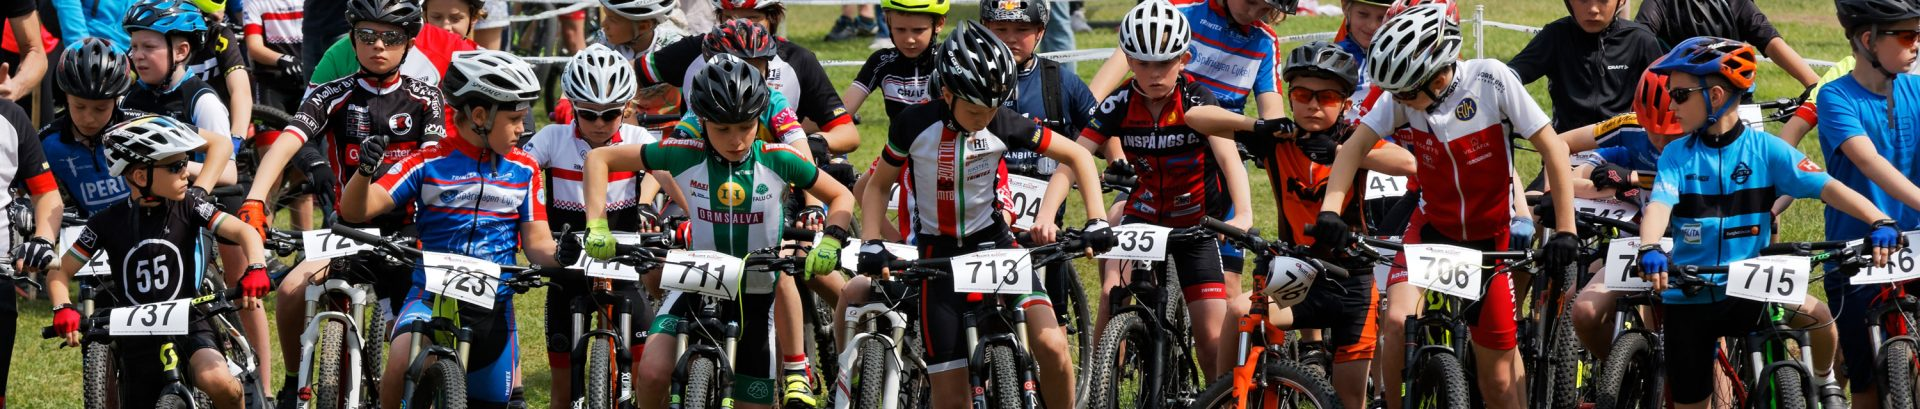 Boys Cycling